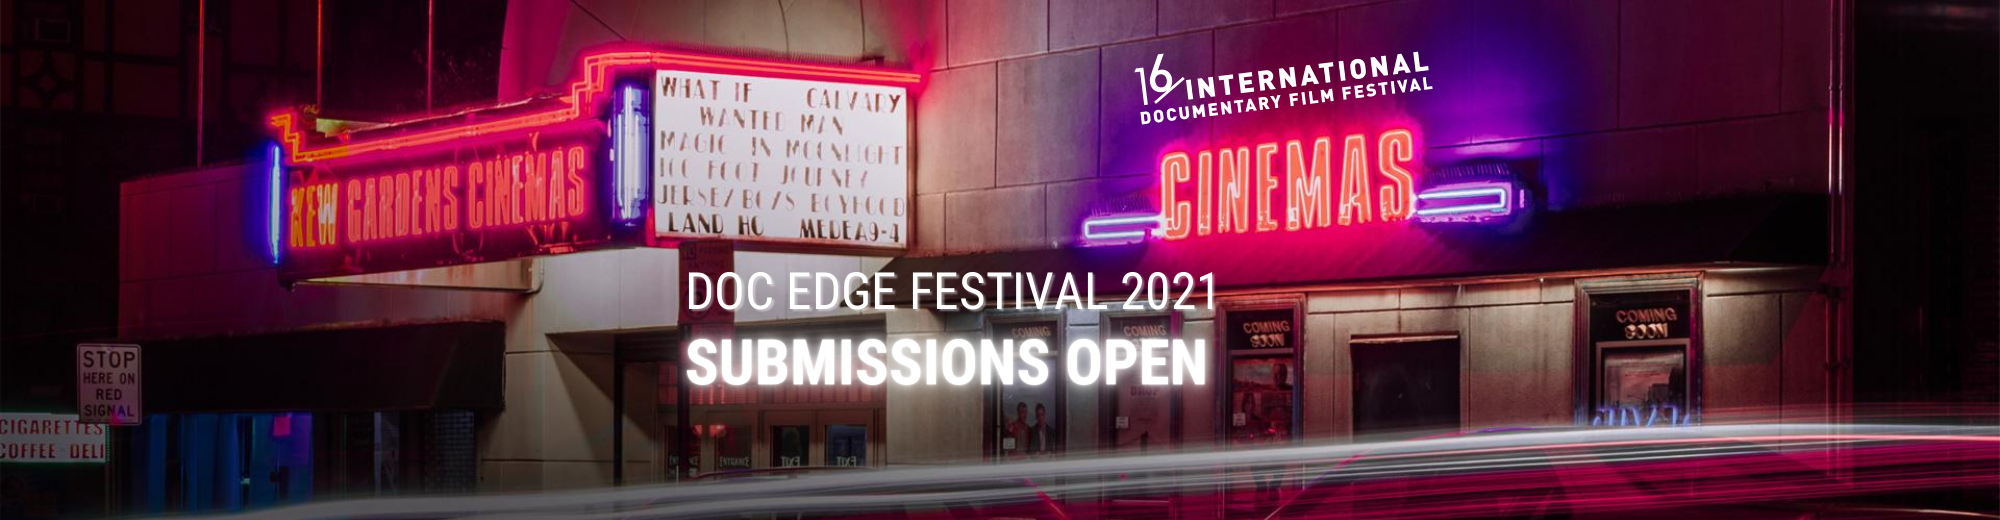 Submissions are now open for Doc Edge Festival 2021